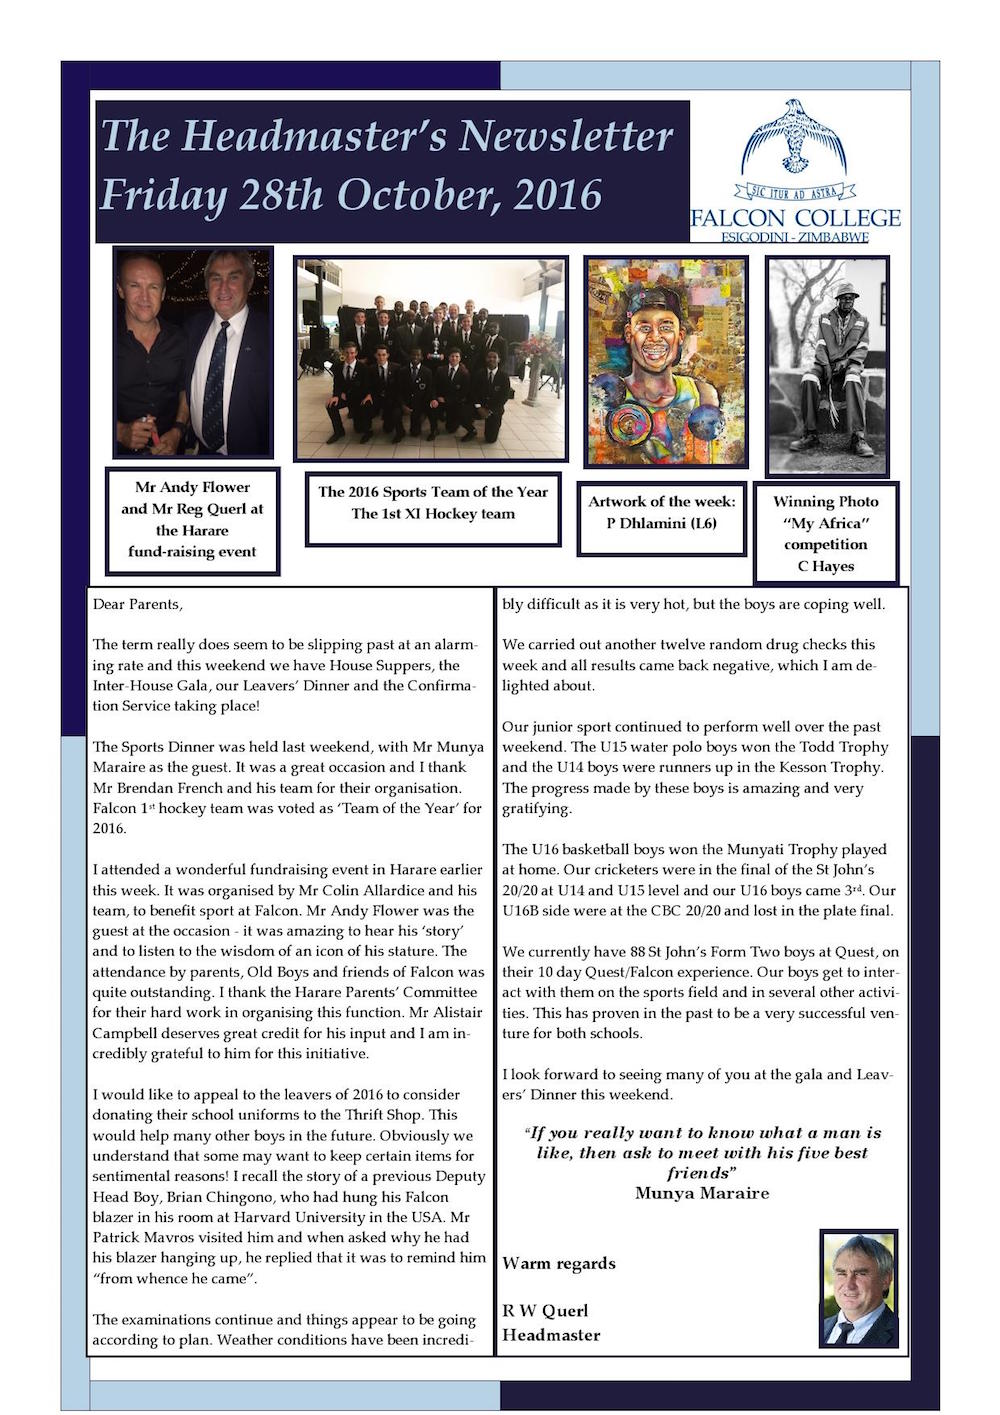 headmasters-newsletter-friday-28th-october-2016-edited_000001